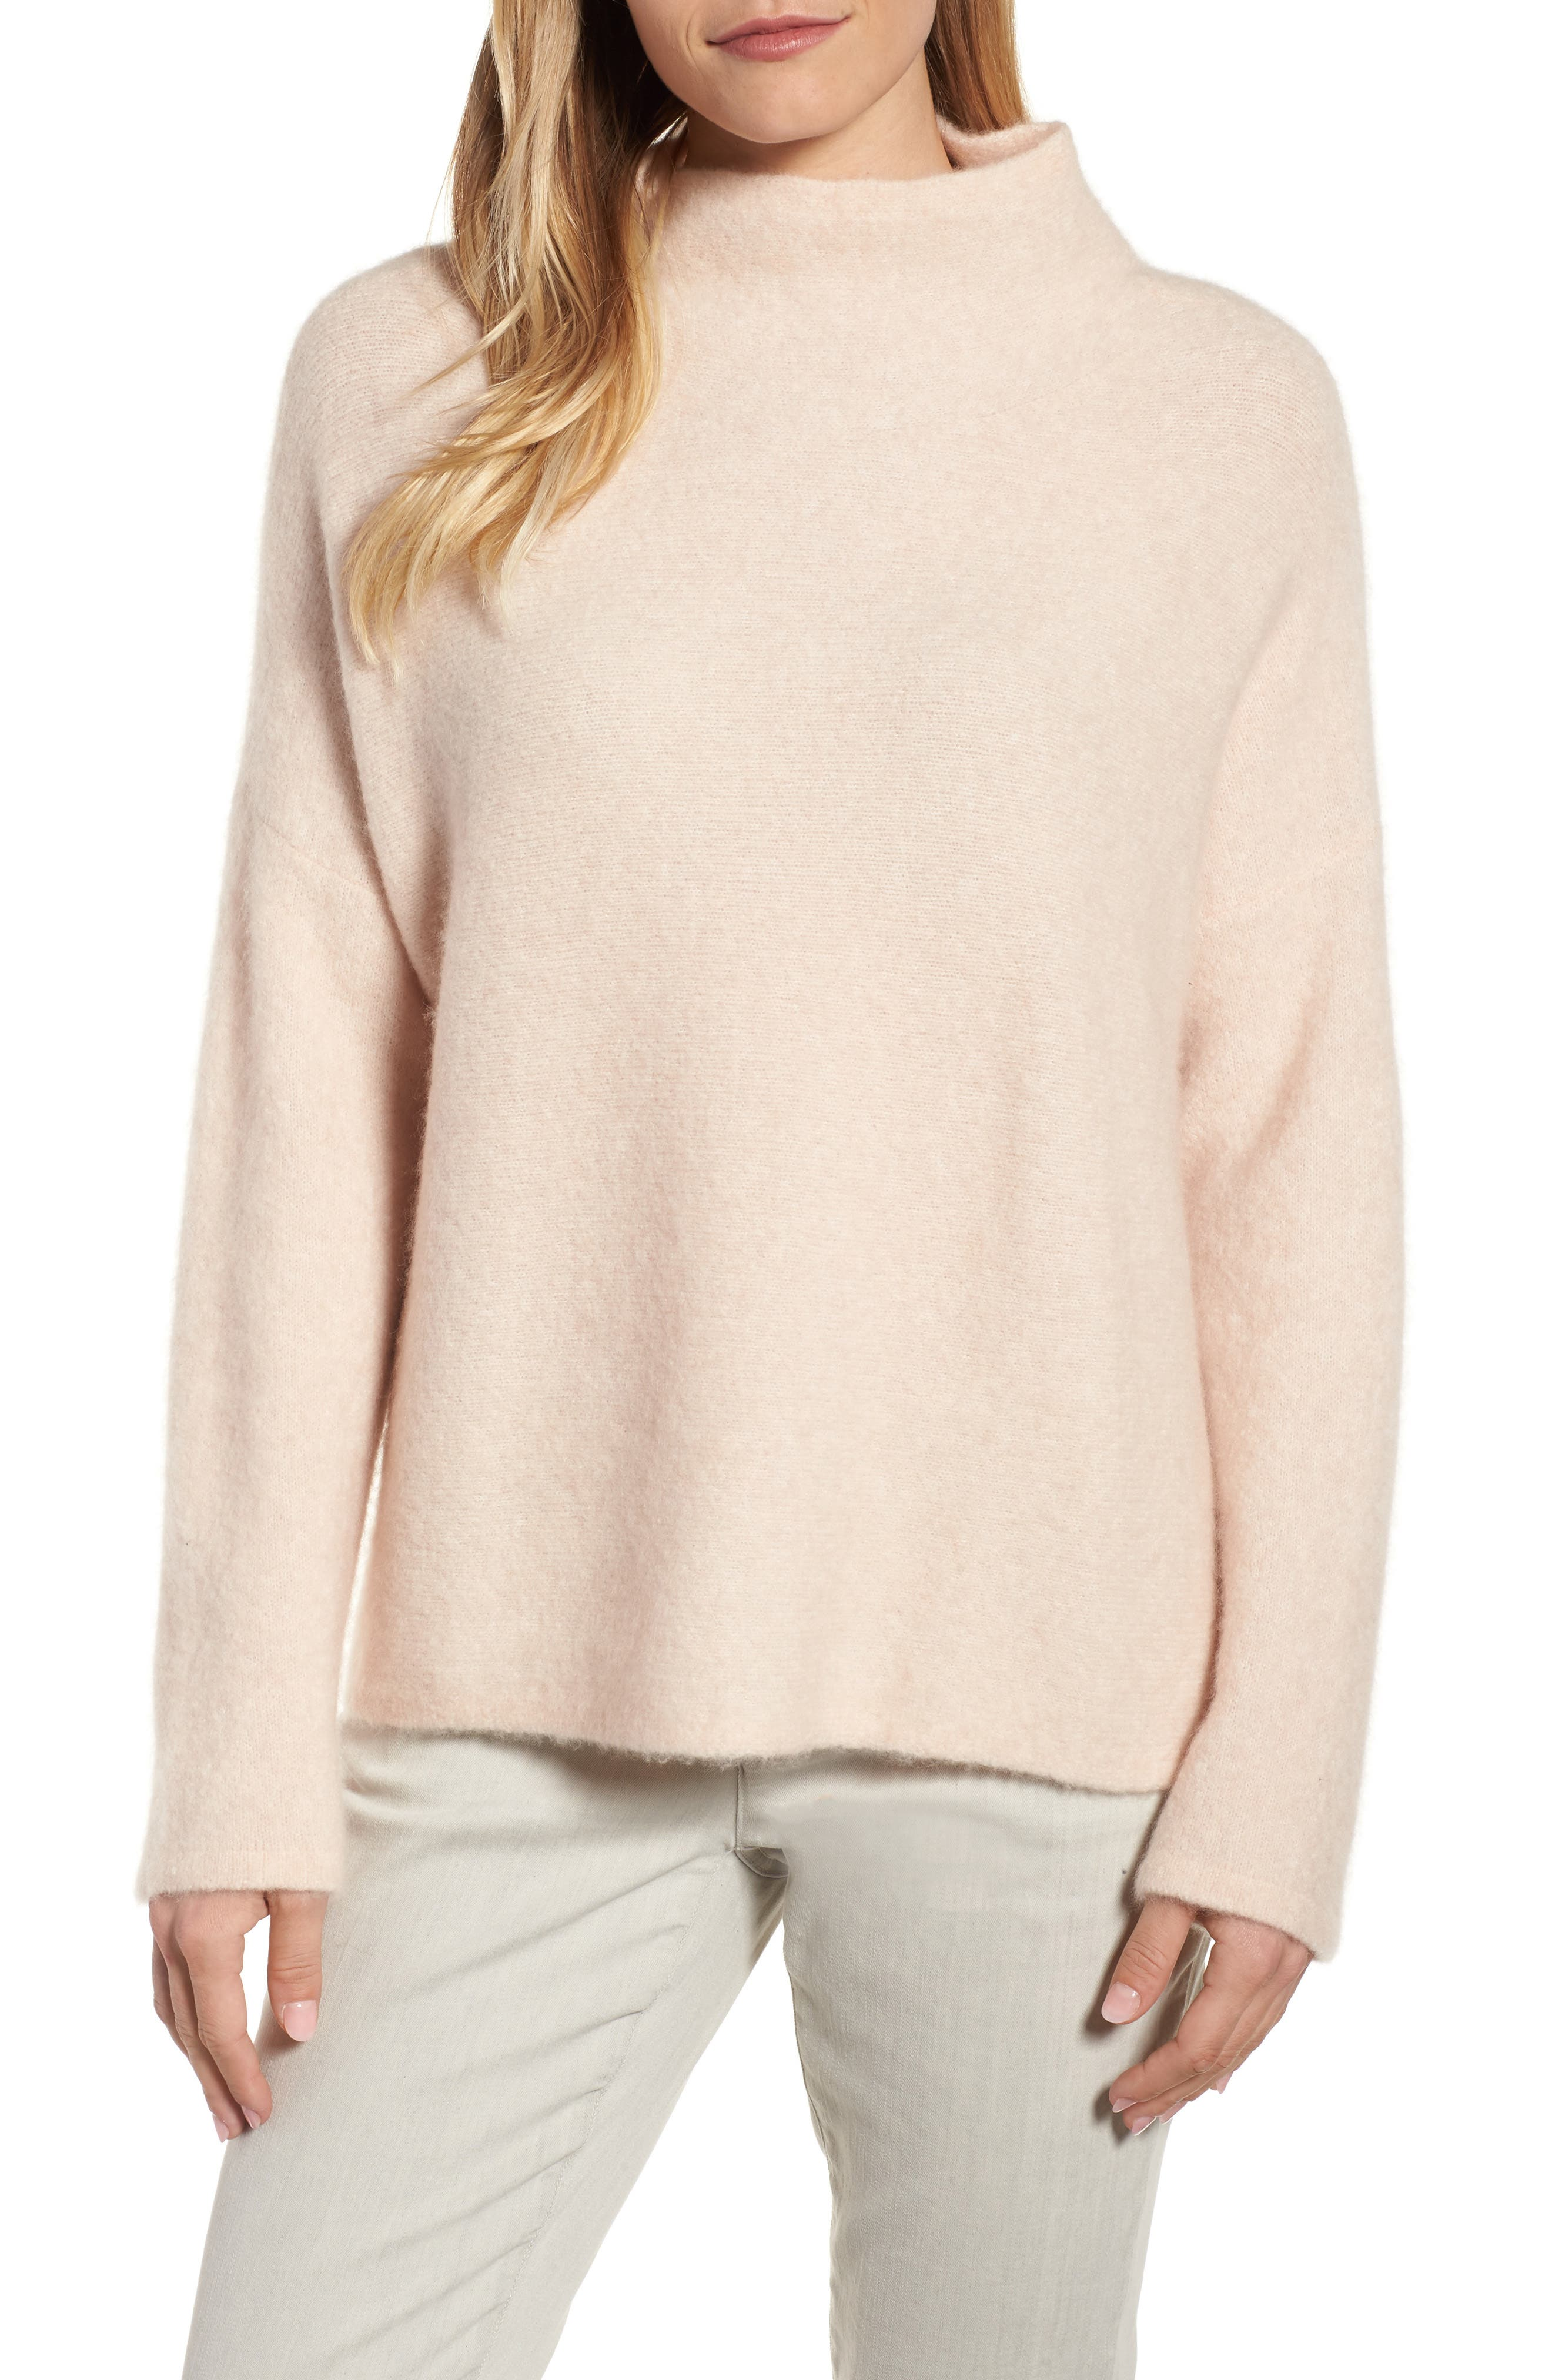 Eileen Fisher 'Bouclé Bliss' Cashmere & Silk Blend Funnel Neck Sweater